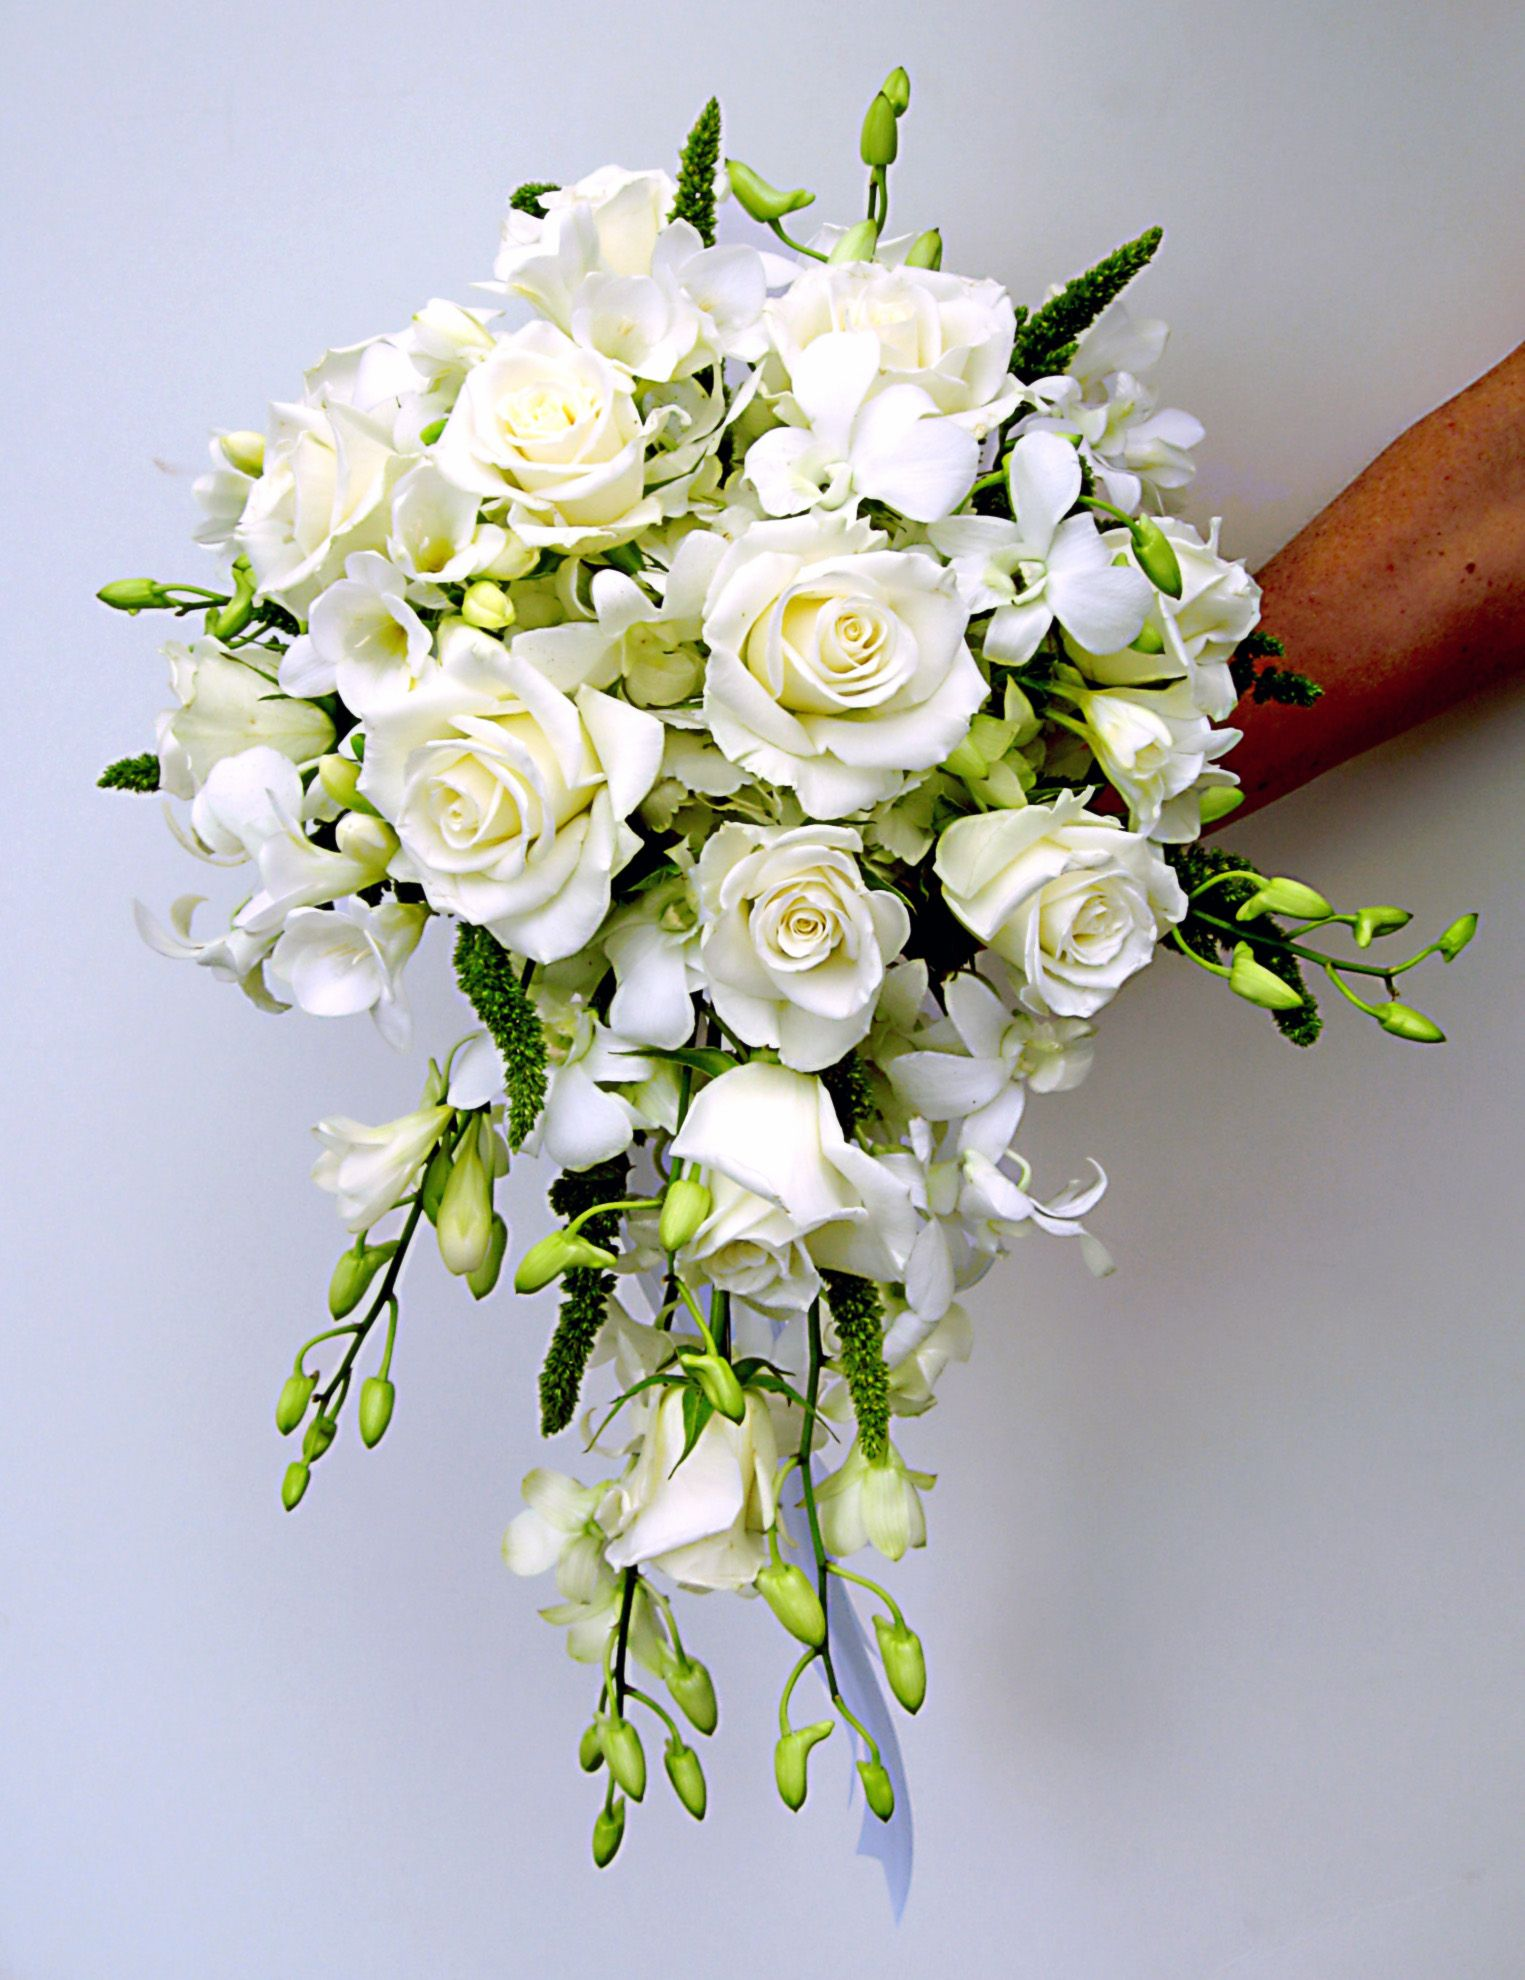 All White Cascade Bouquet With Roses And Dendrobium Orchids Flower Bouquet Wedding Cascading Wedding Bouquets Small Wedding Bouquets